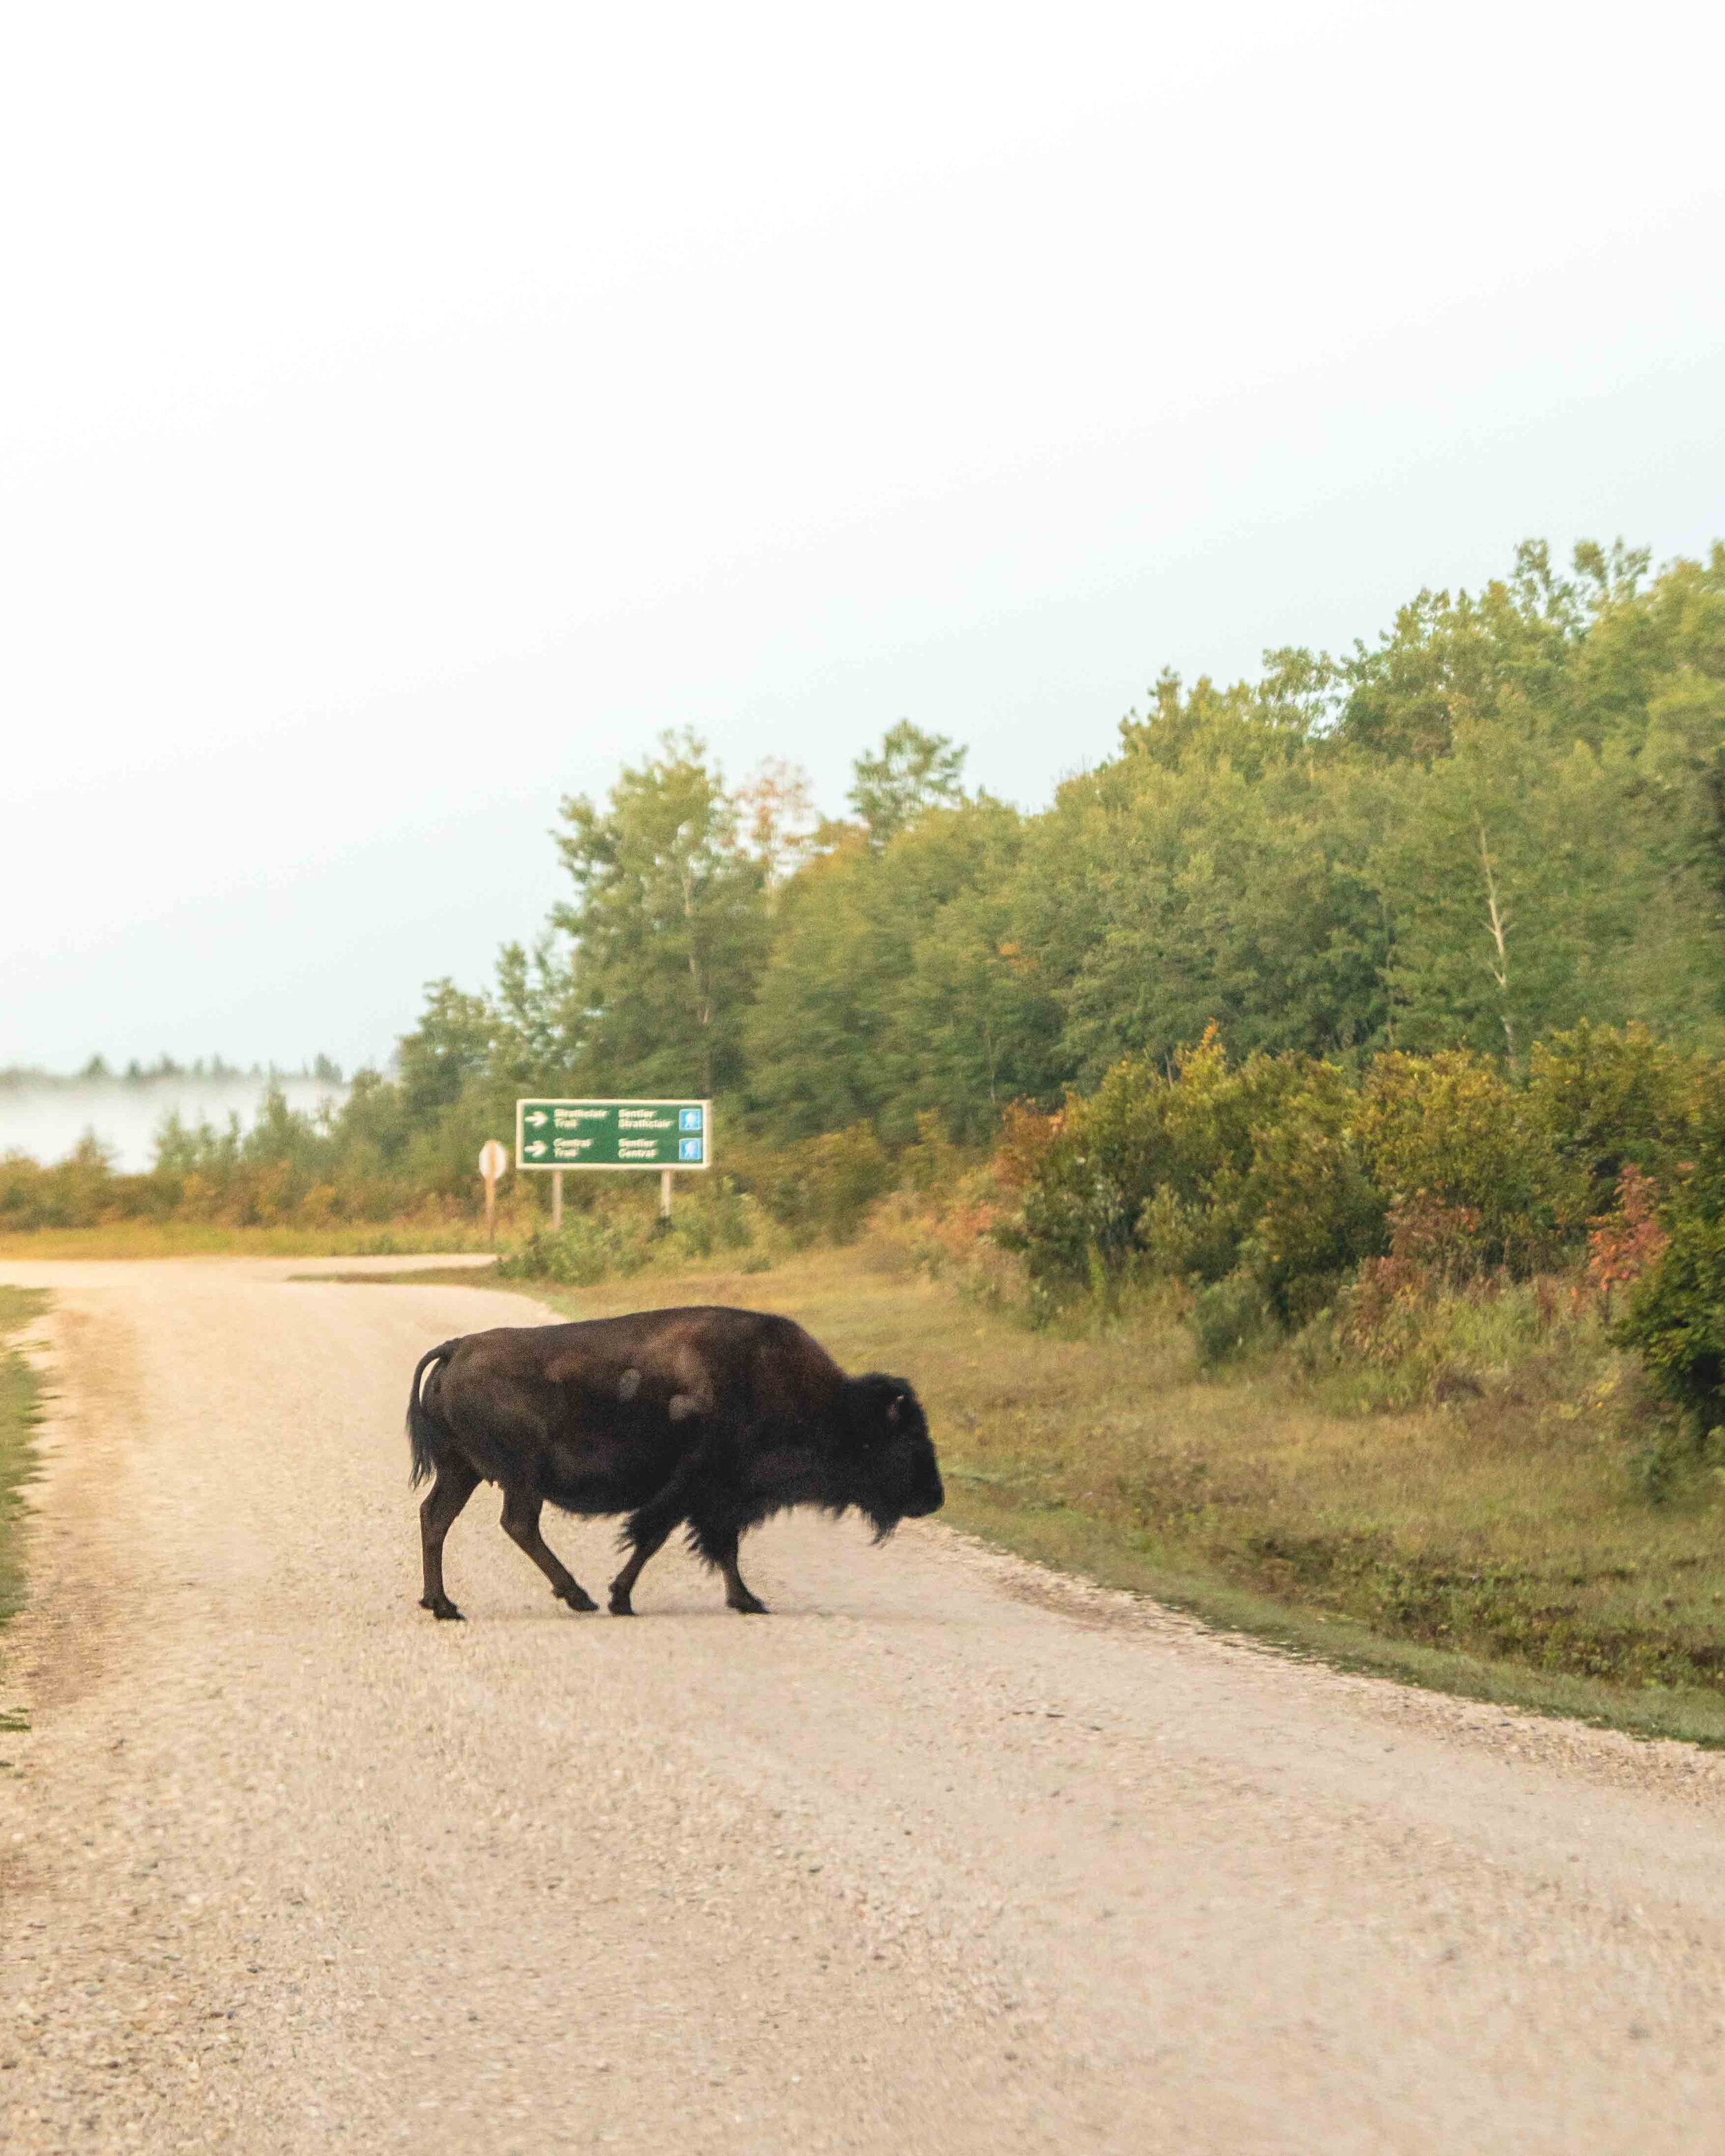 Bison on the road in Manitoba